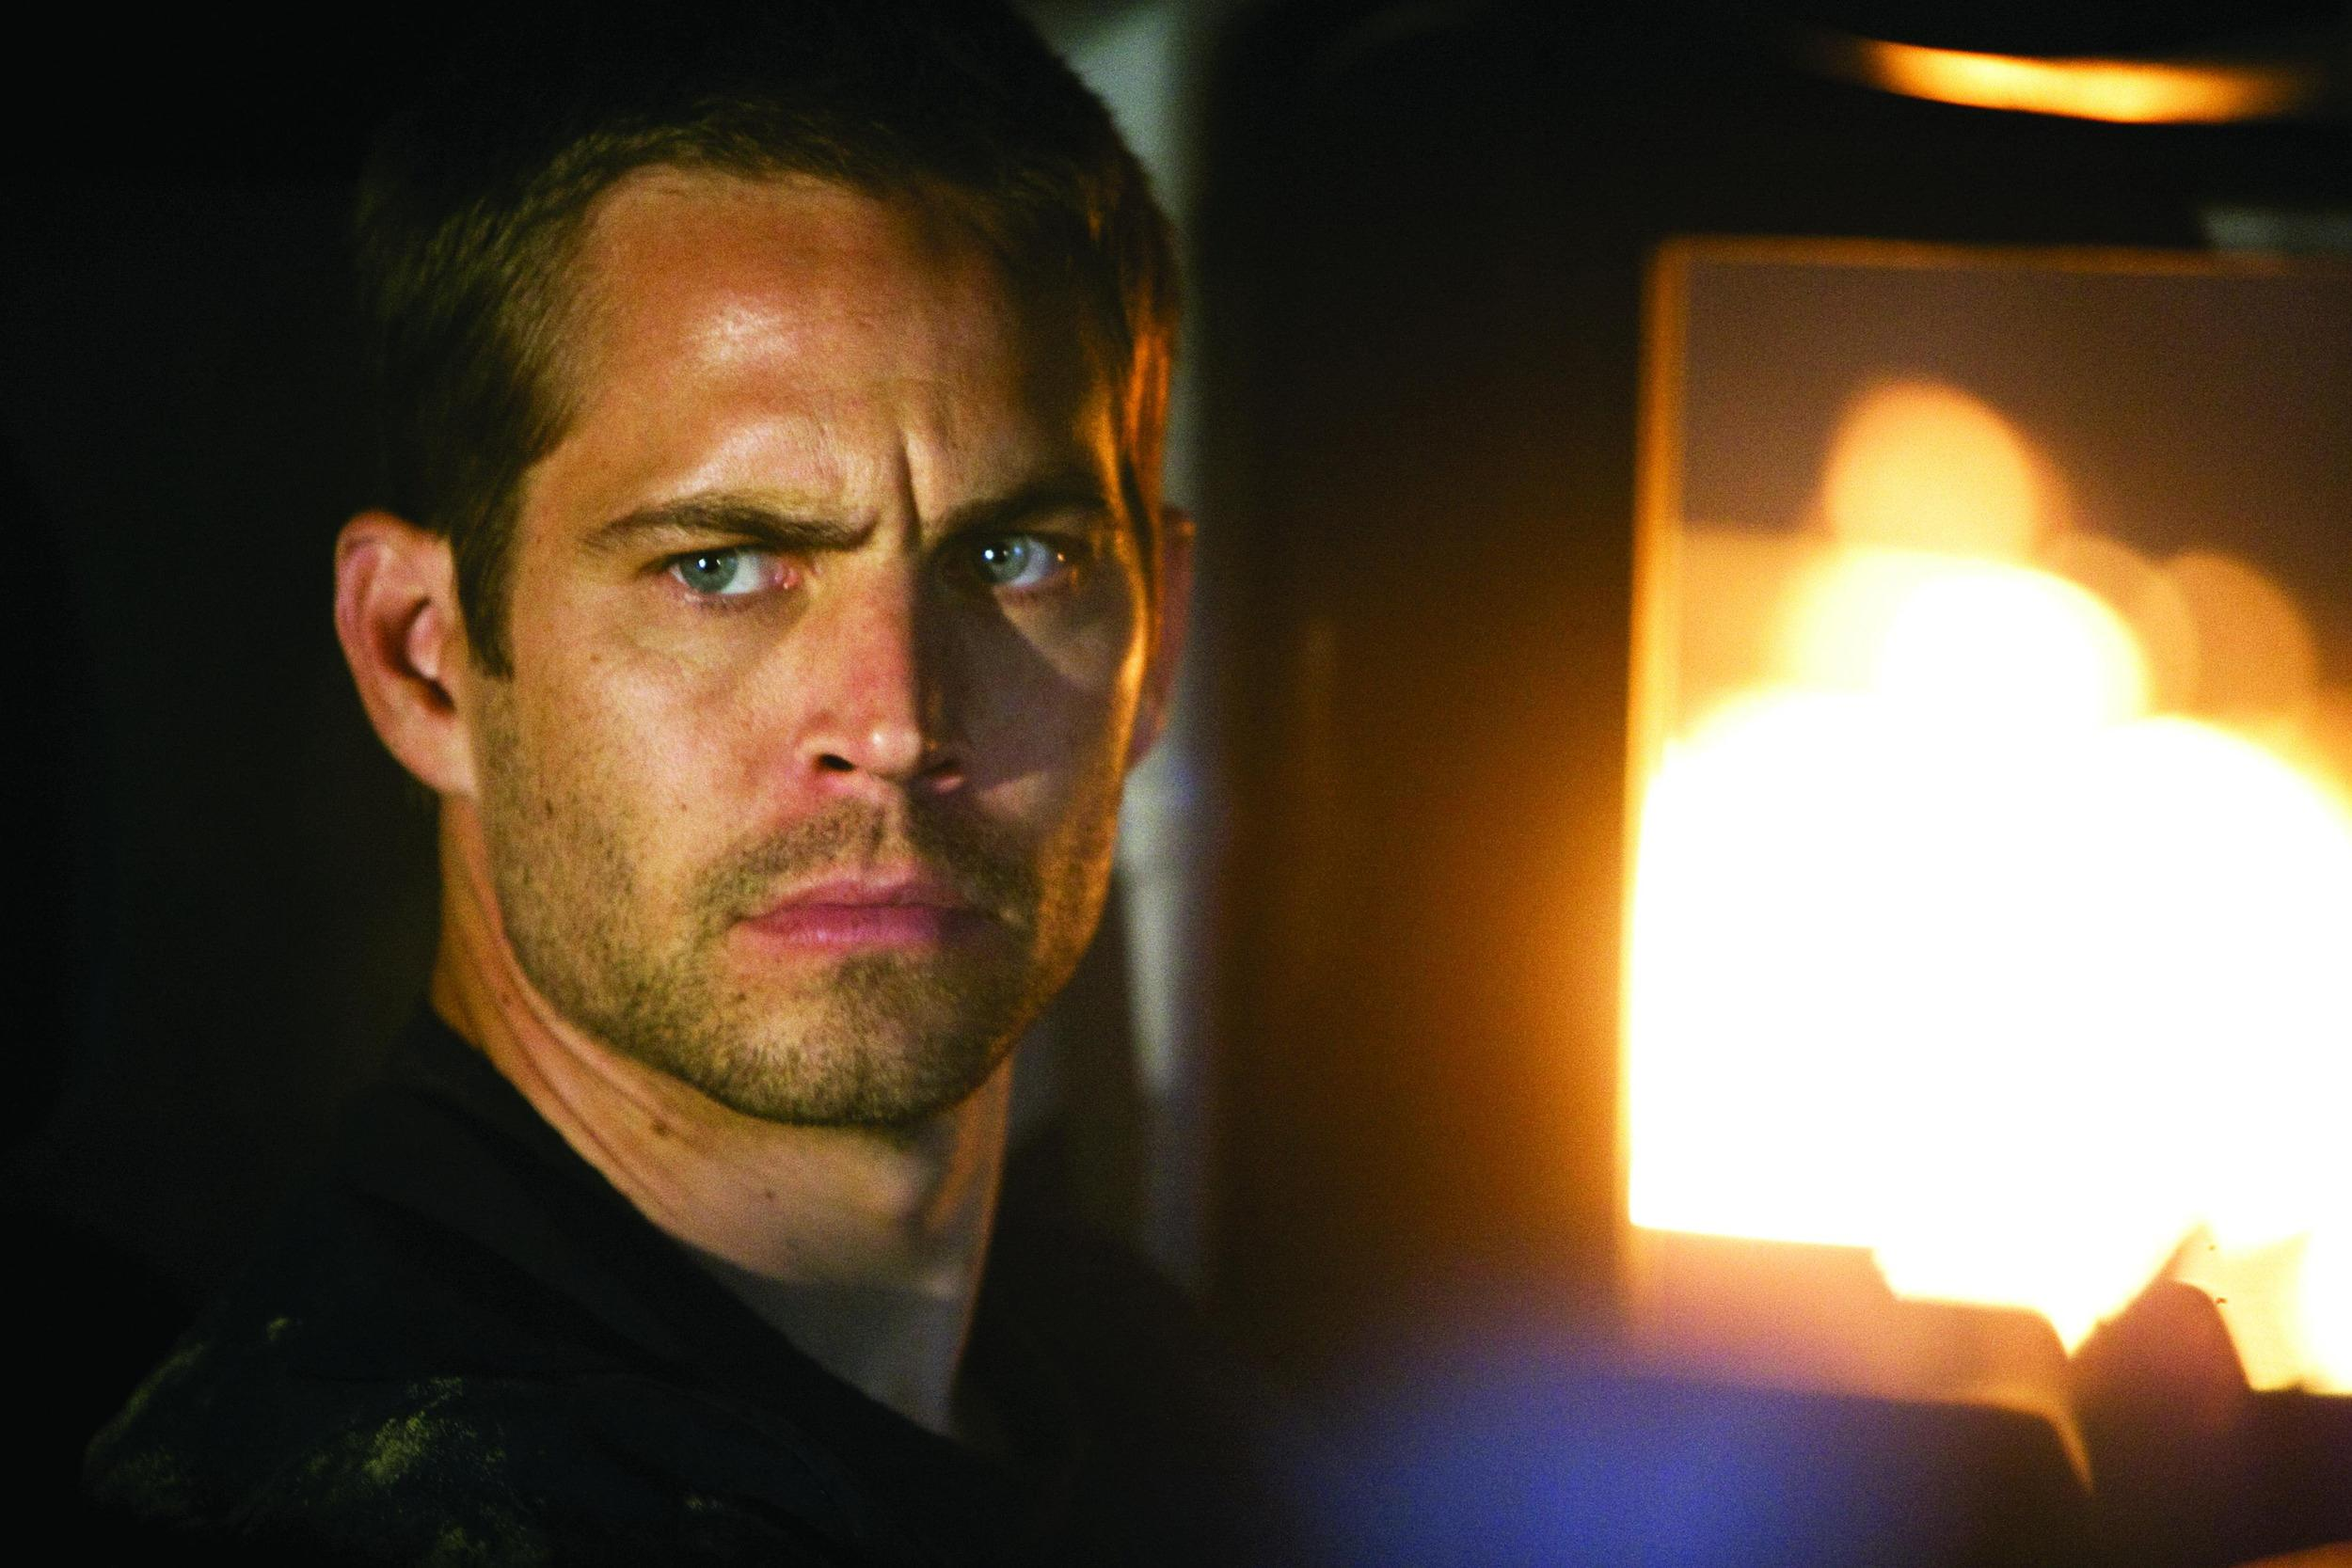 Rip Paul Walker Top Best Fast And The Furious Film: Paul Walker's Brothers Helping Finish Late Actor's Final